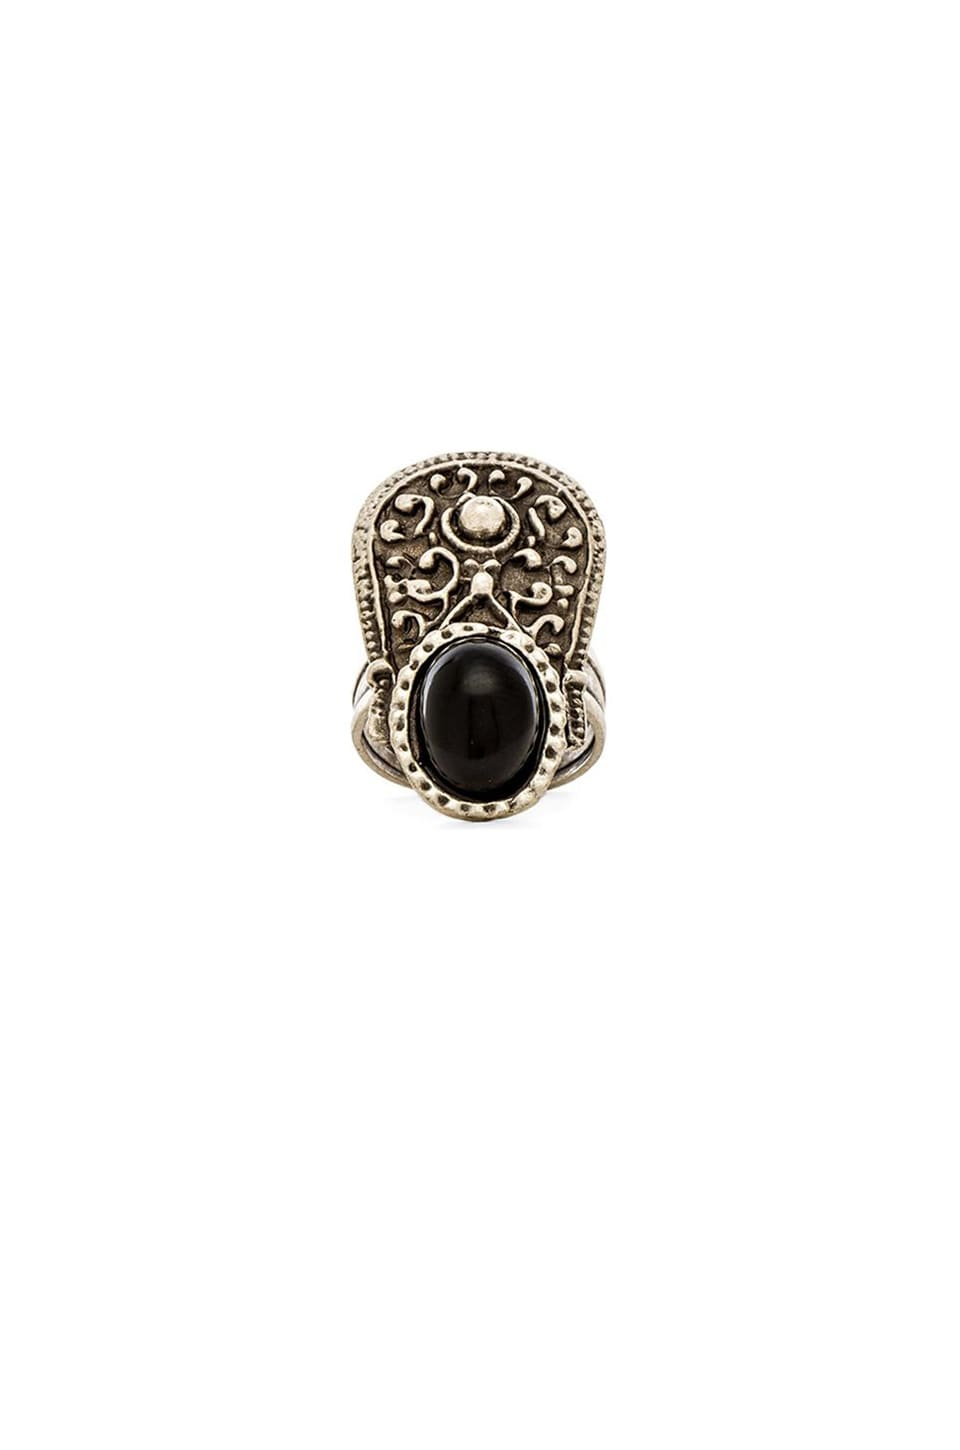 Natalie B Jewelry Eye of Troy Ring in Silver